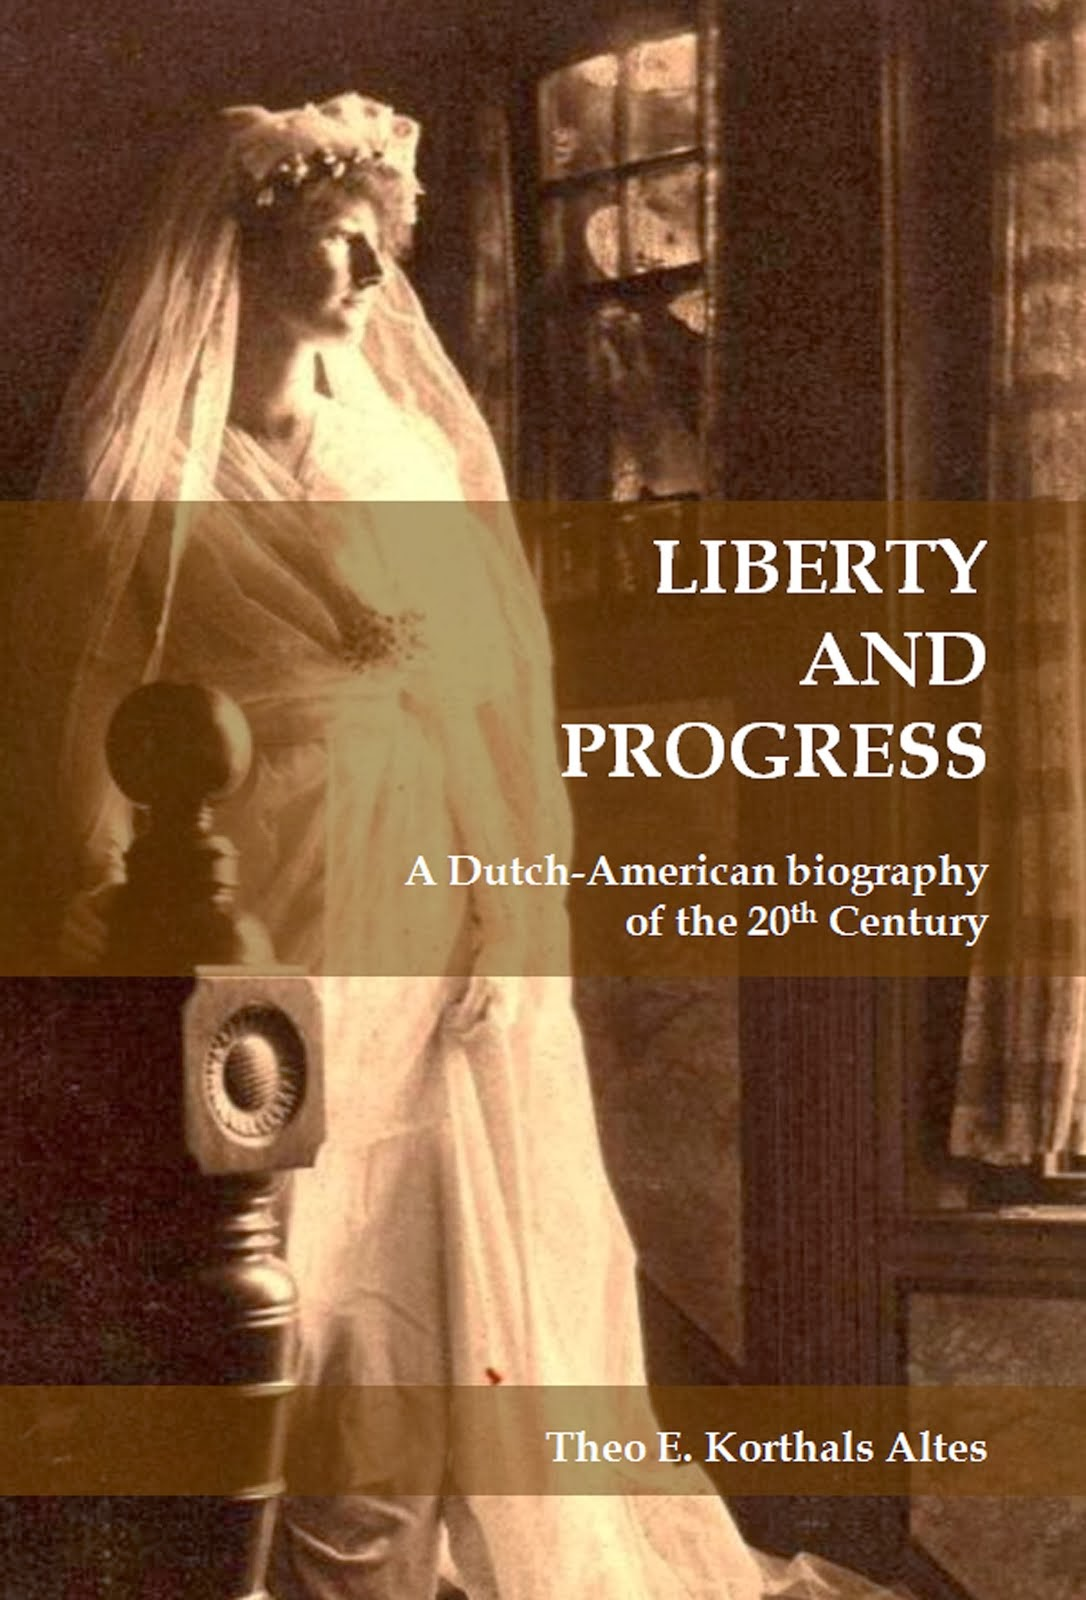 Lieberty and Progress - A Dutch-American biography of the 20th Century (2012)